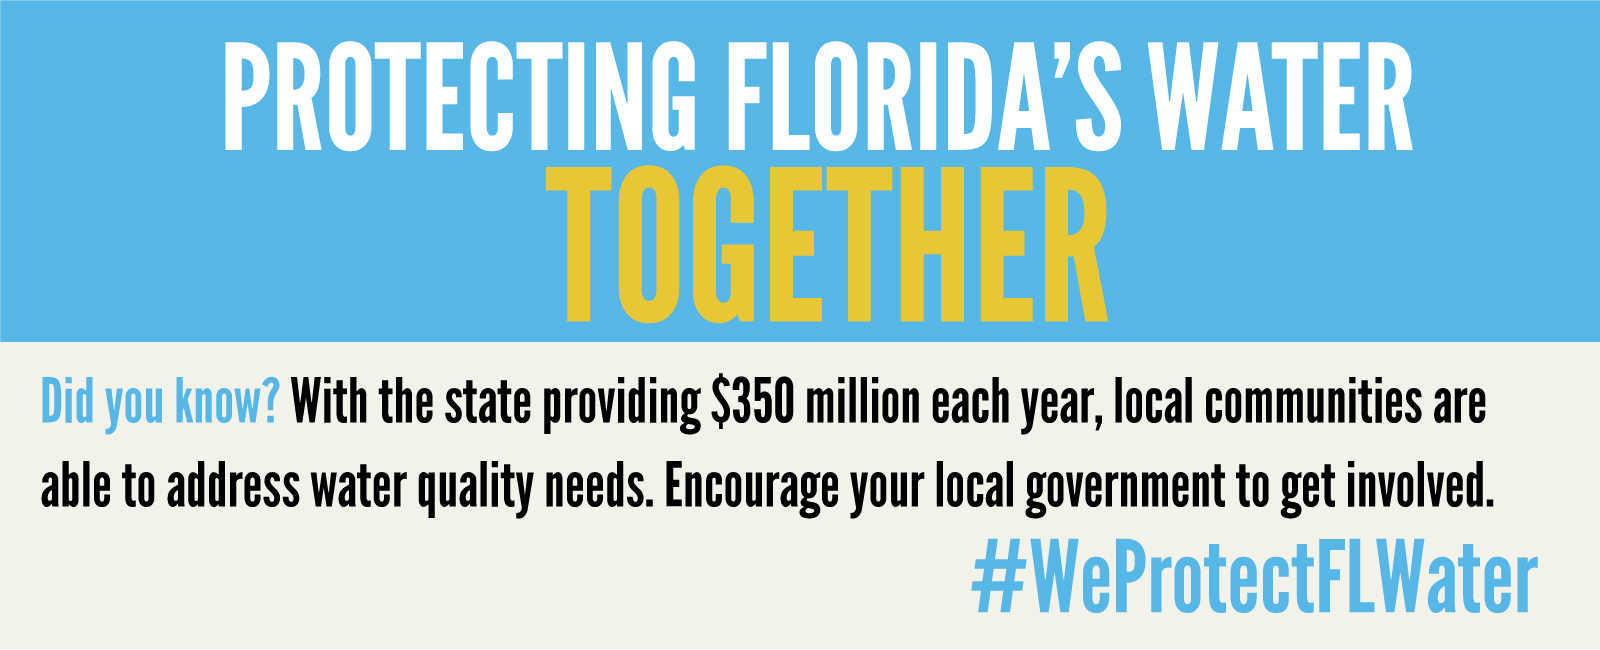 DYK? With the state providing $350 million each year, local communities are able to address water quality needs. Encourage your local government to get involved. #WeProtectFLWater